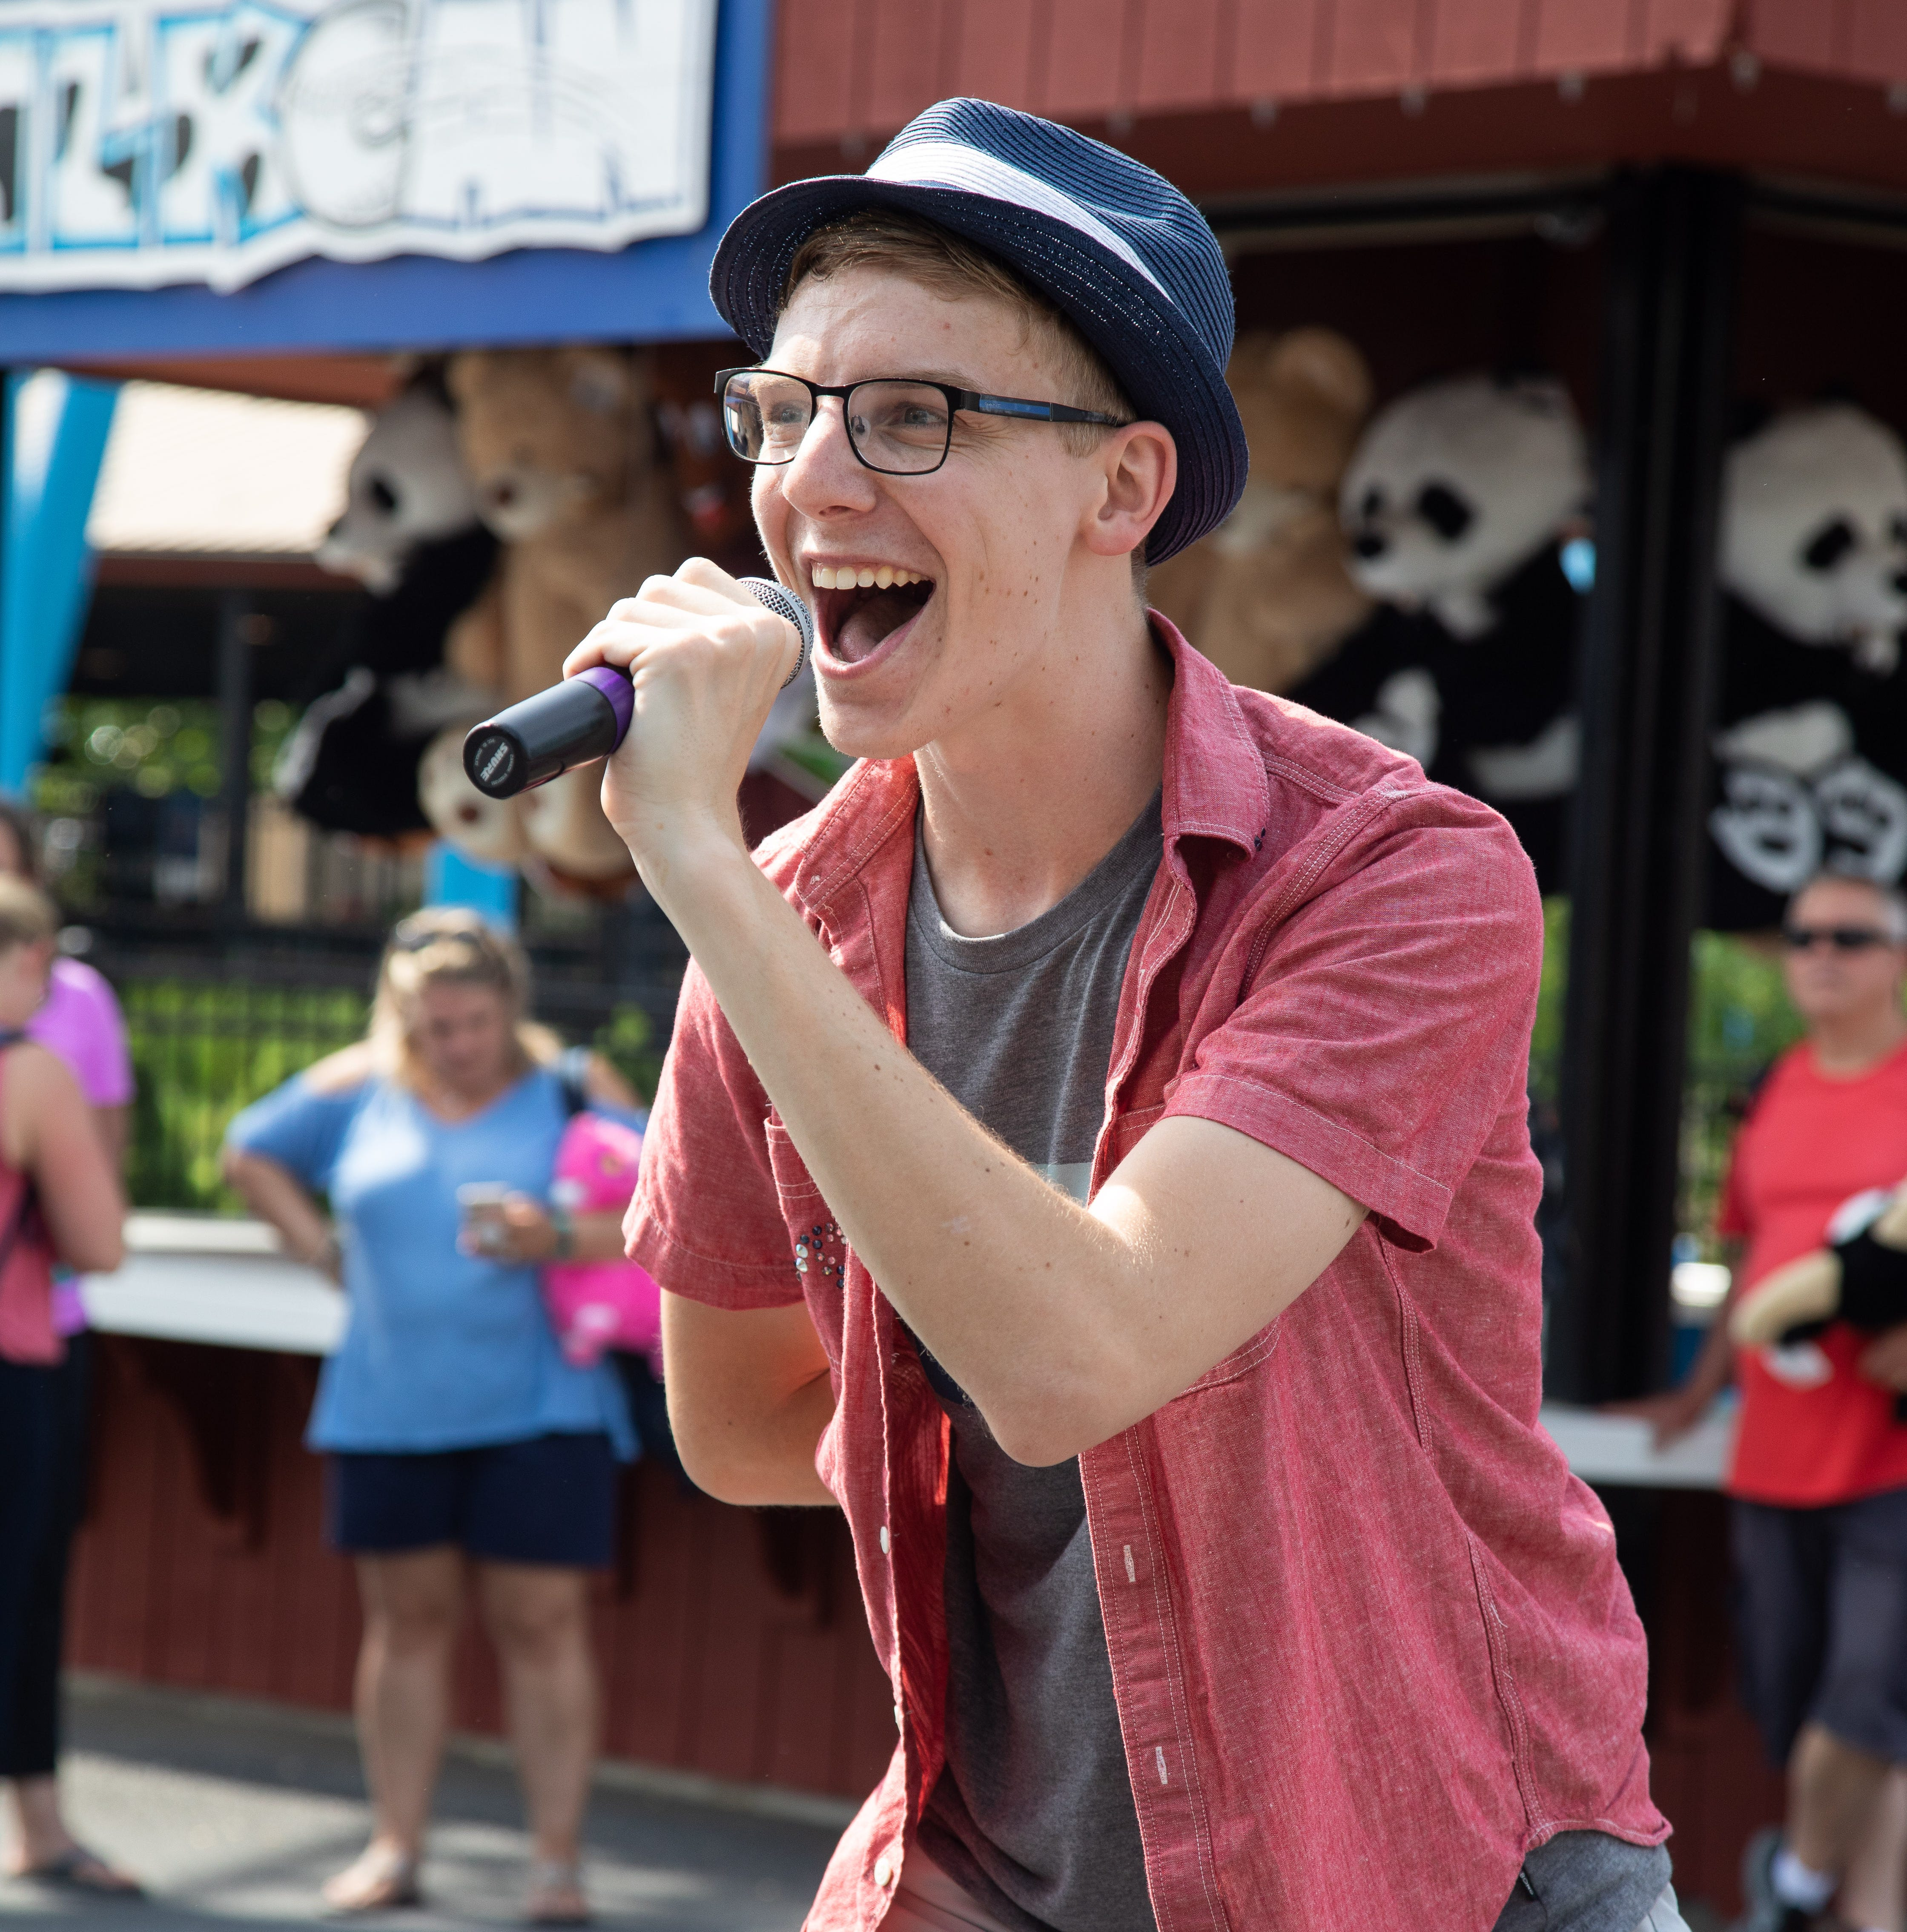 Riding The Waves: Central Pa.'s Nik Olson is rockin' it in Hersheypark summertime show